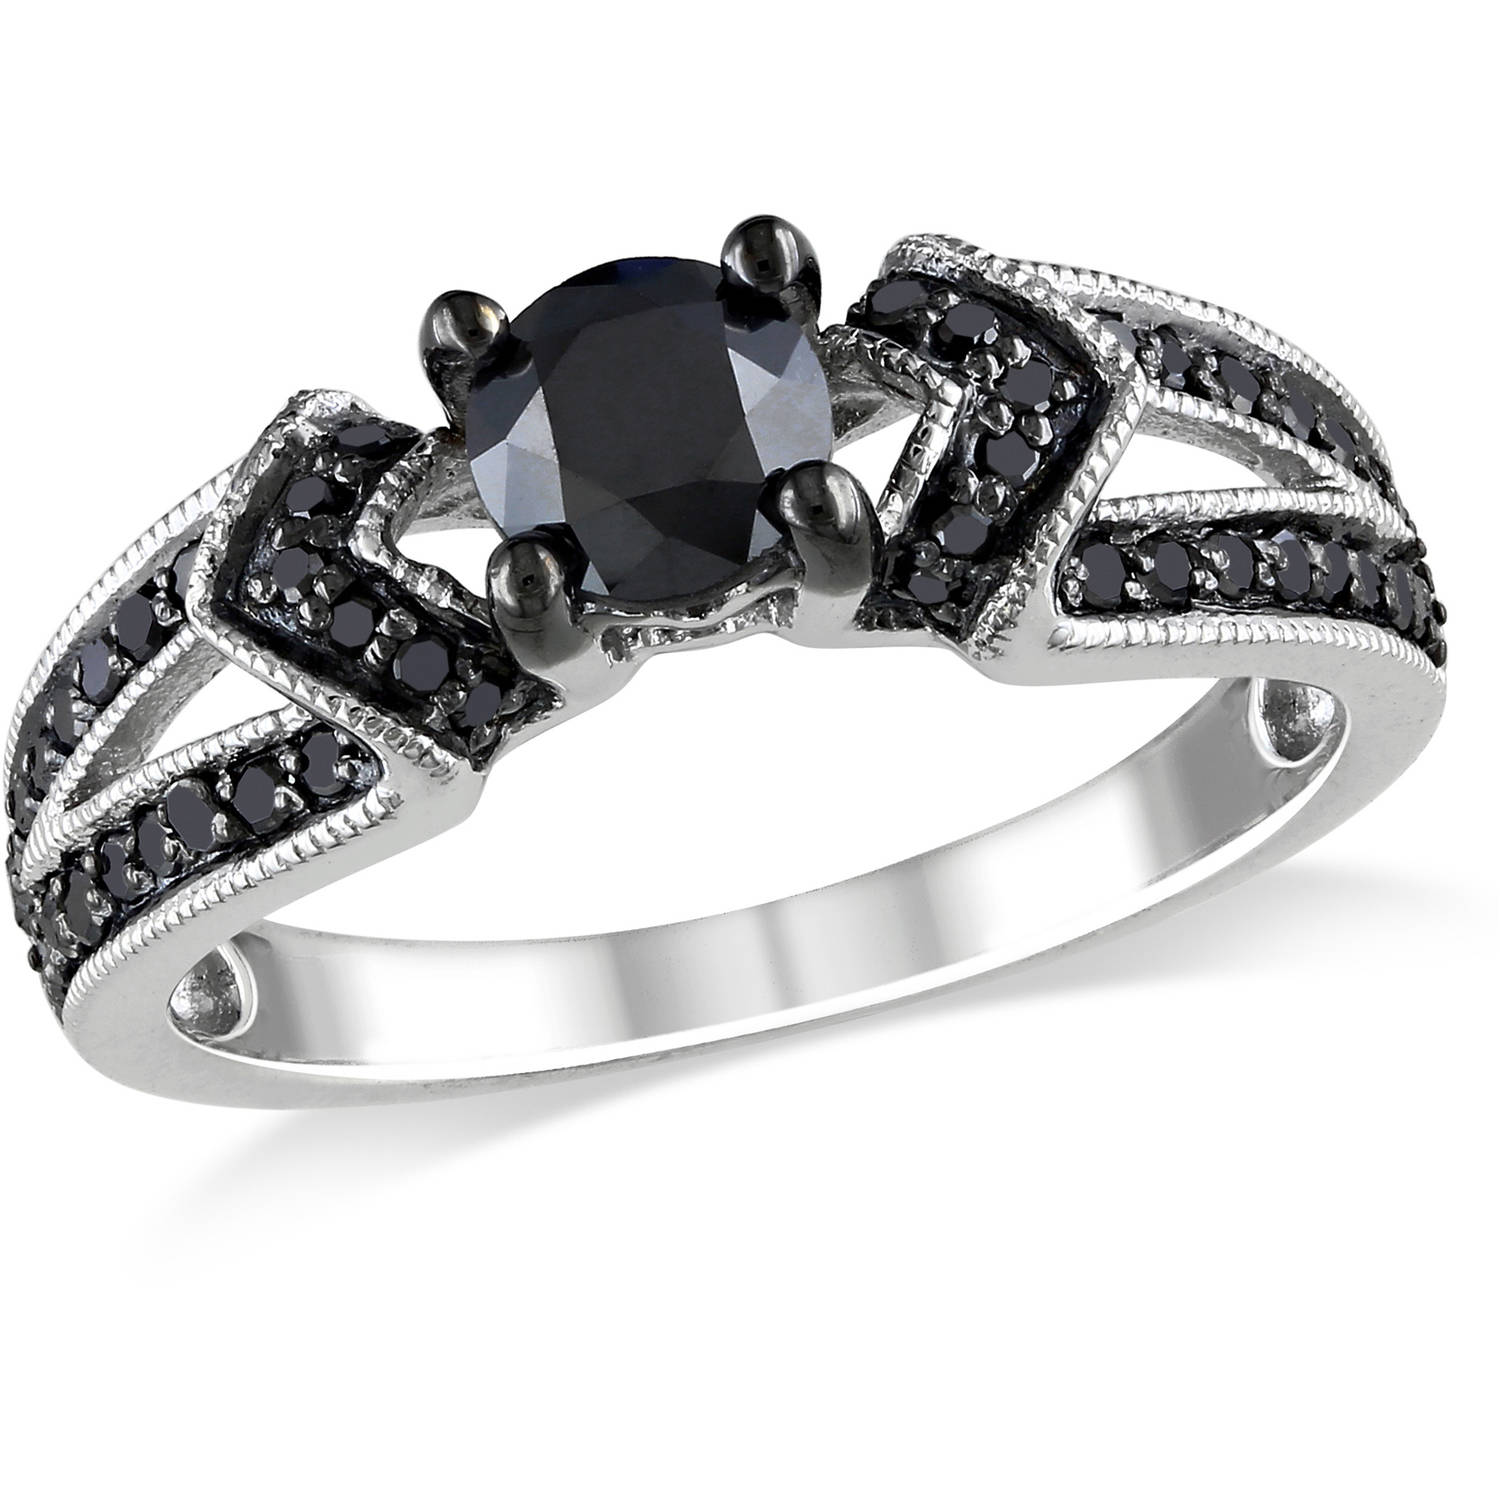 1 Carat T.W. Black Diamond Sterling Silver Engagement Ring